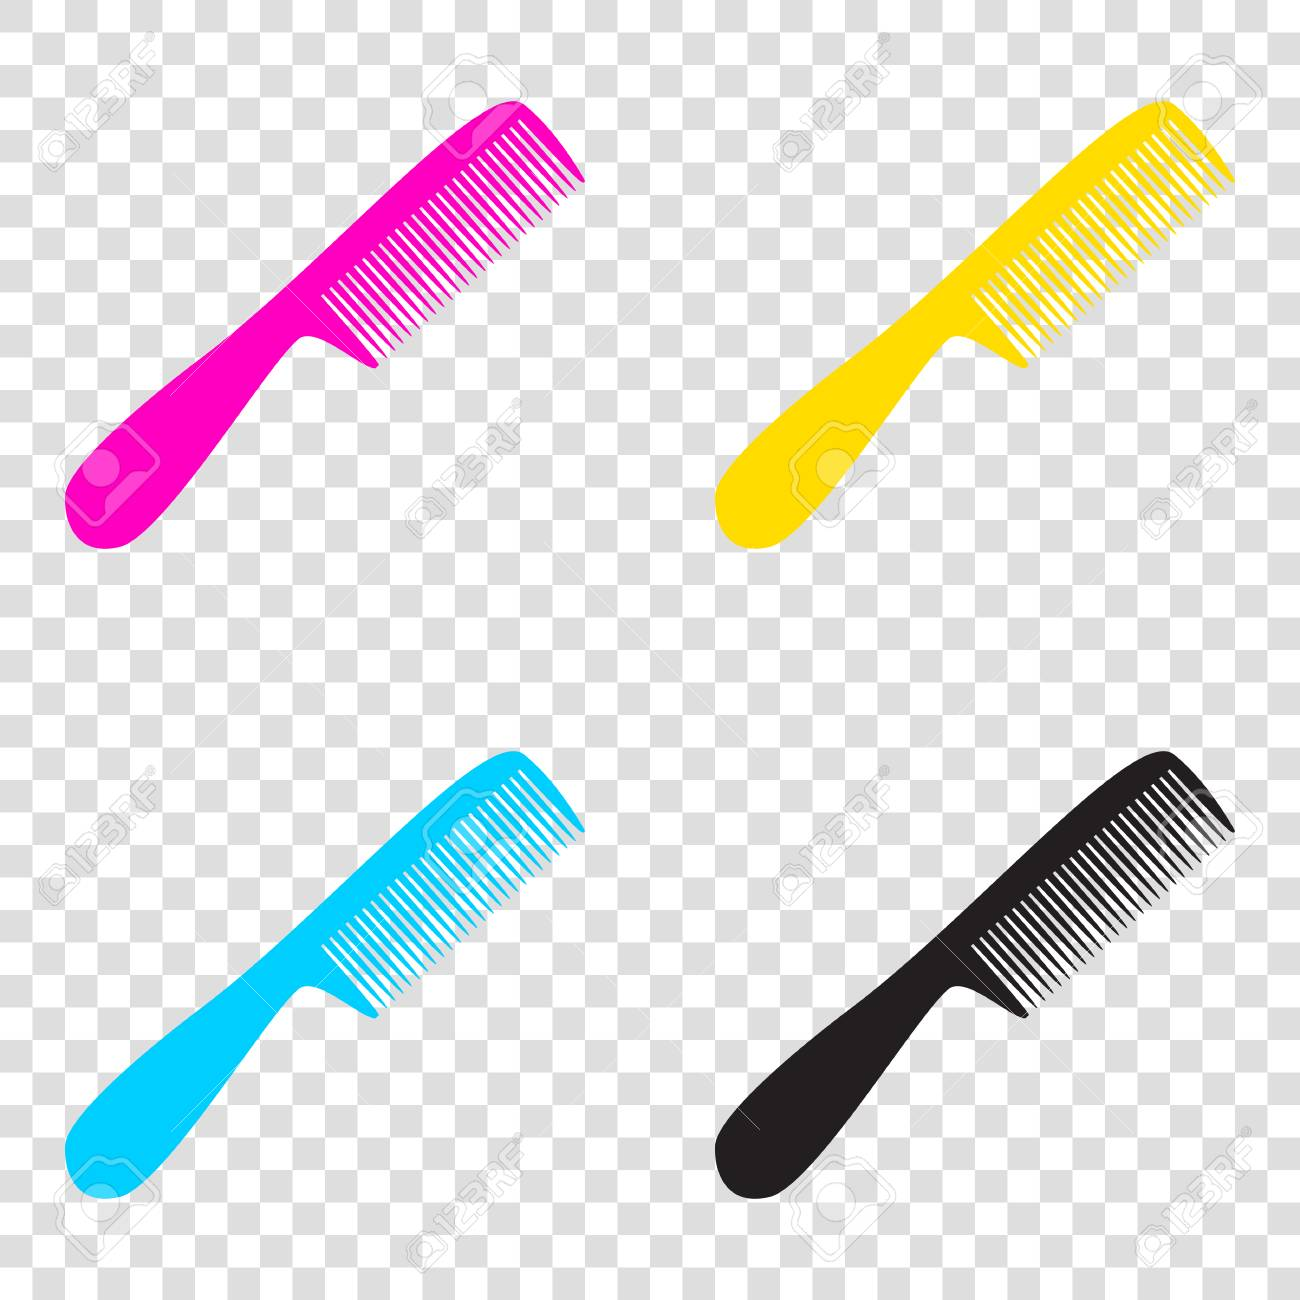 Comb simple sign  CMYK icons on transparent background  Cyan,